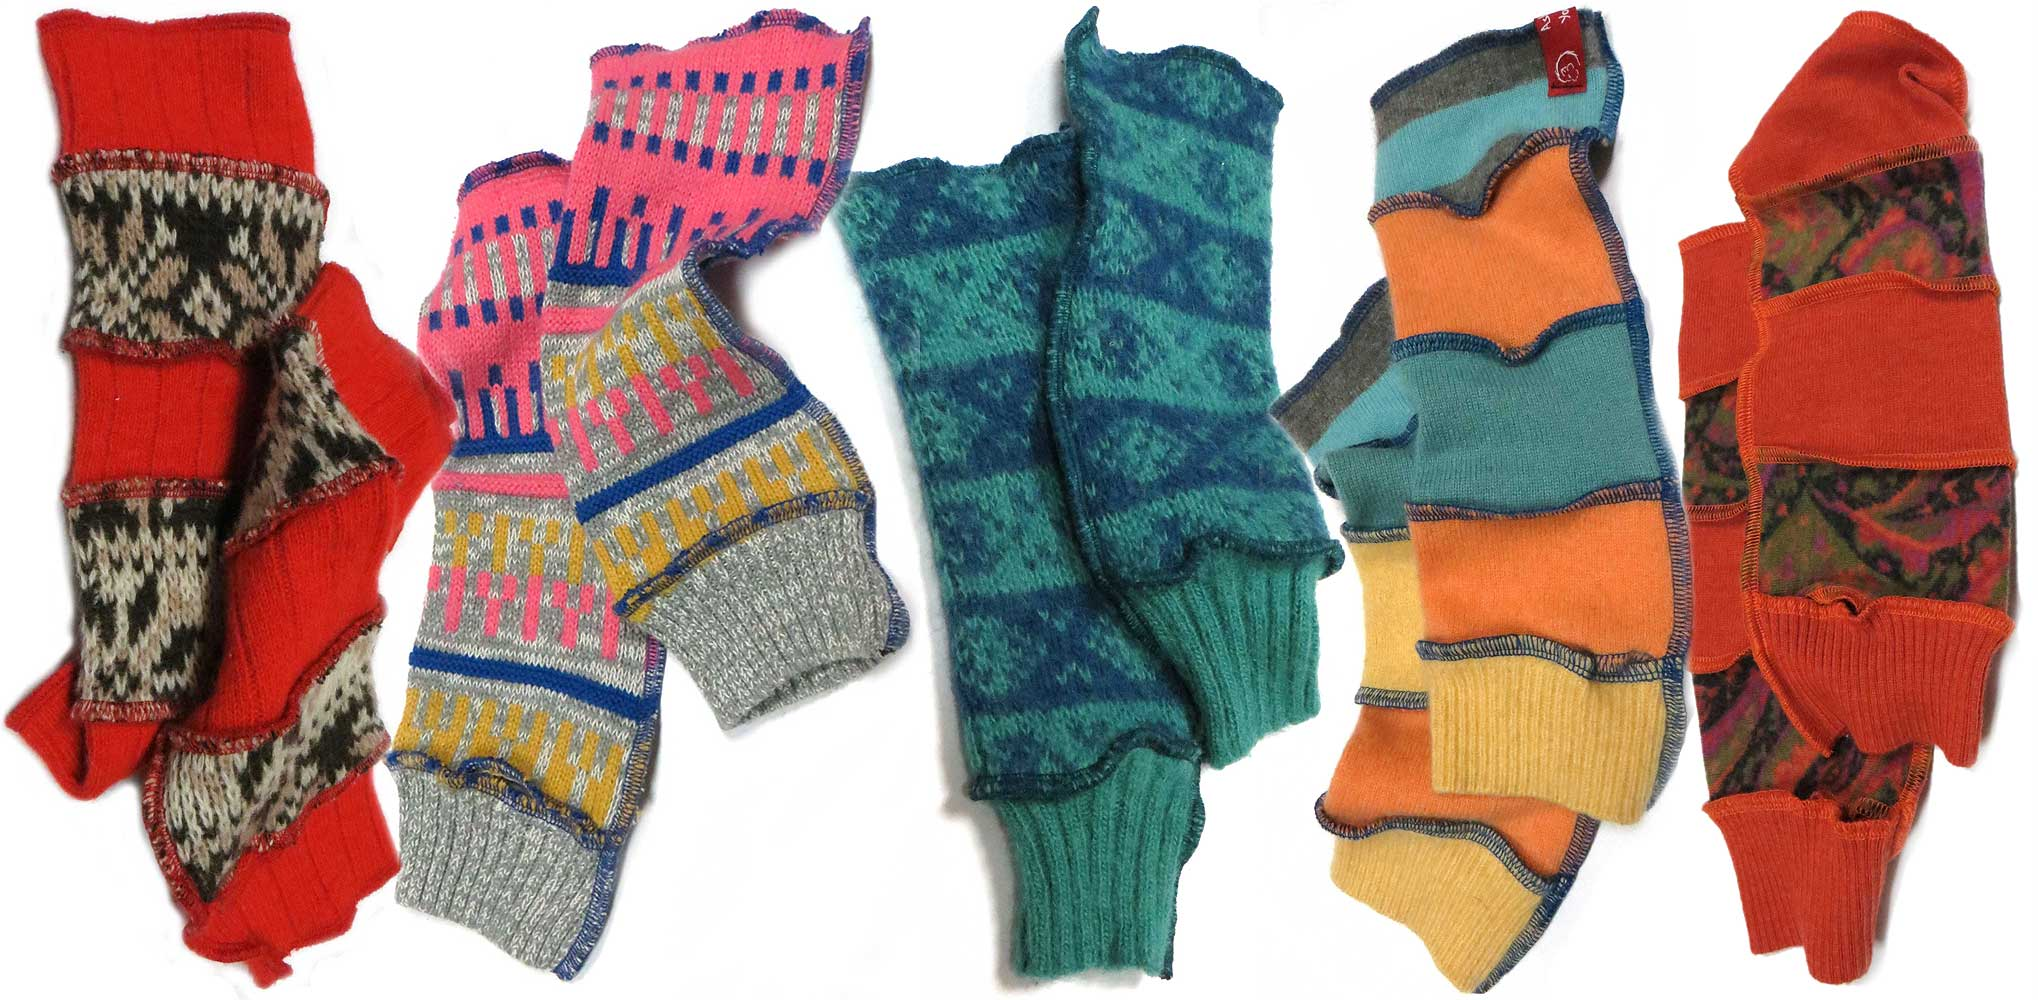 Arm warmers